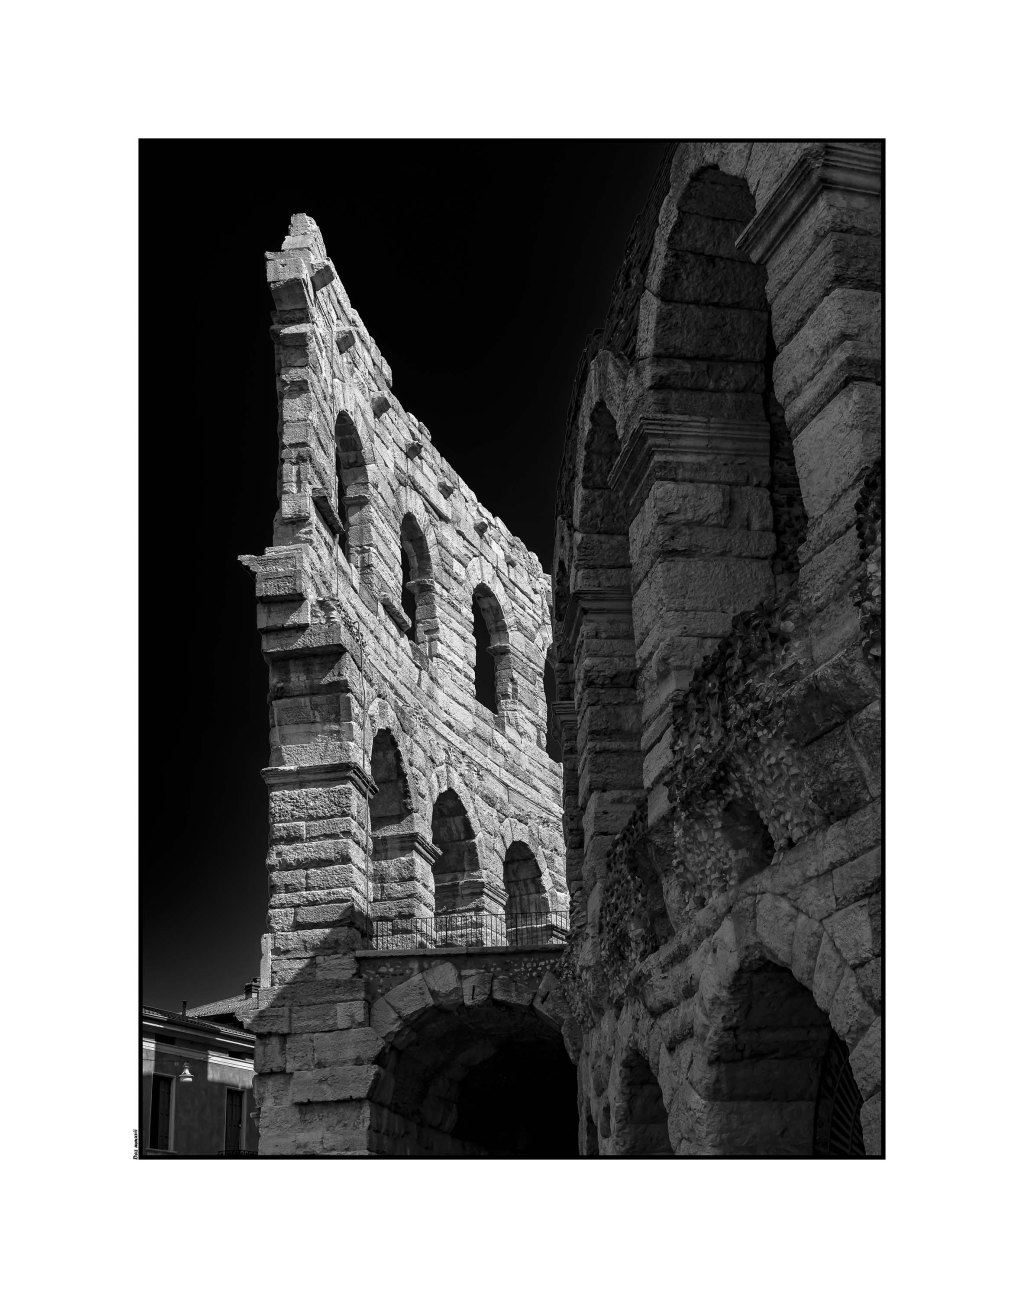 arena-di-verona-optomized